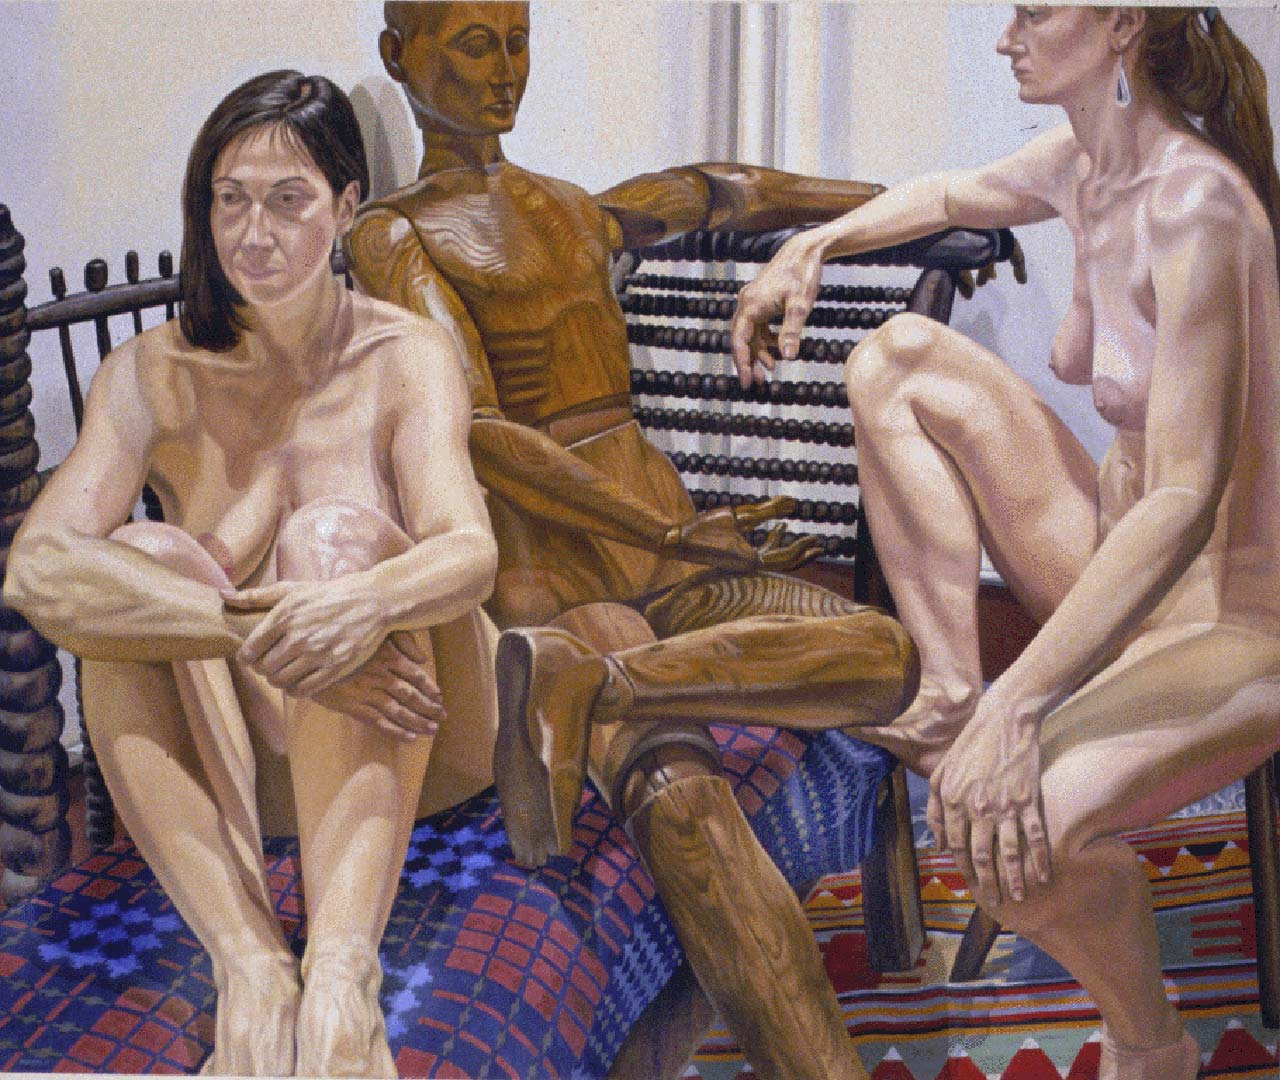 1987 Models with Wooden Mannequin Oil on Canvas 60 x 72